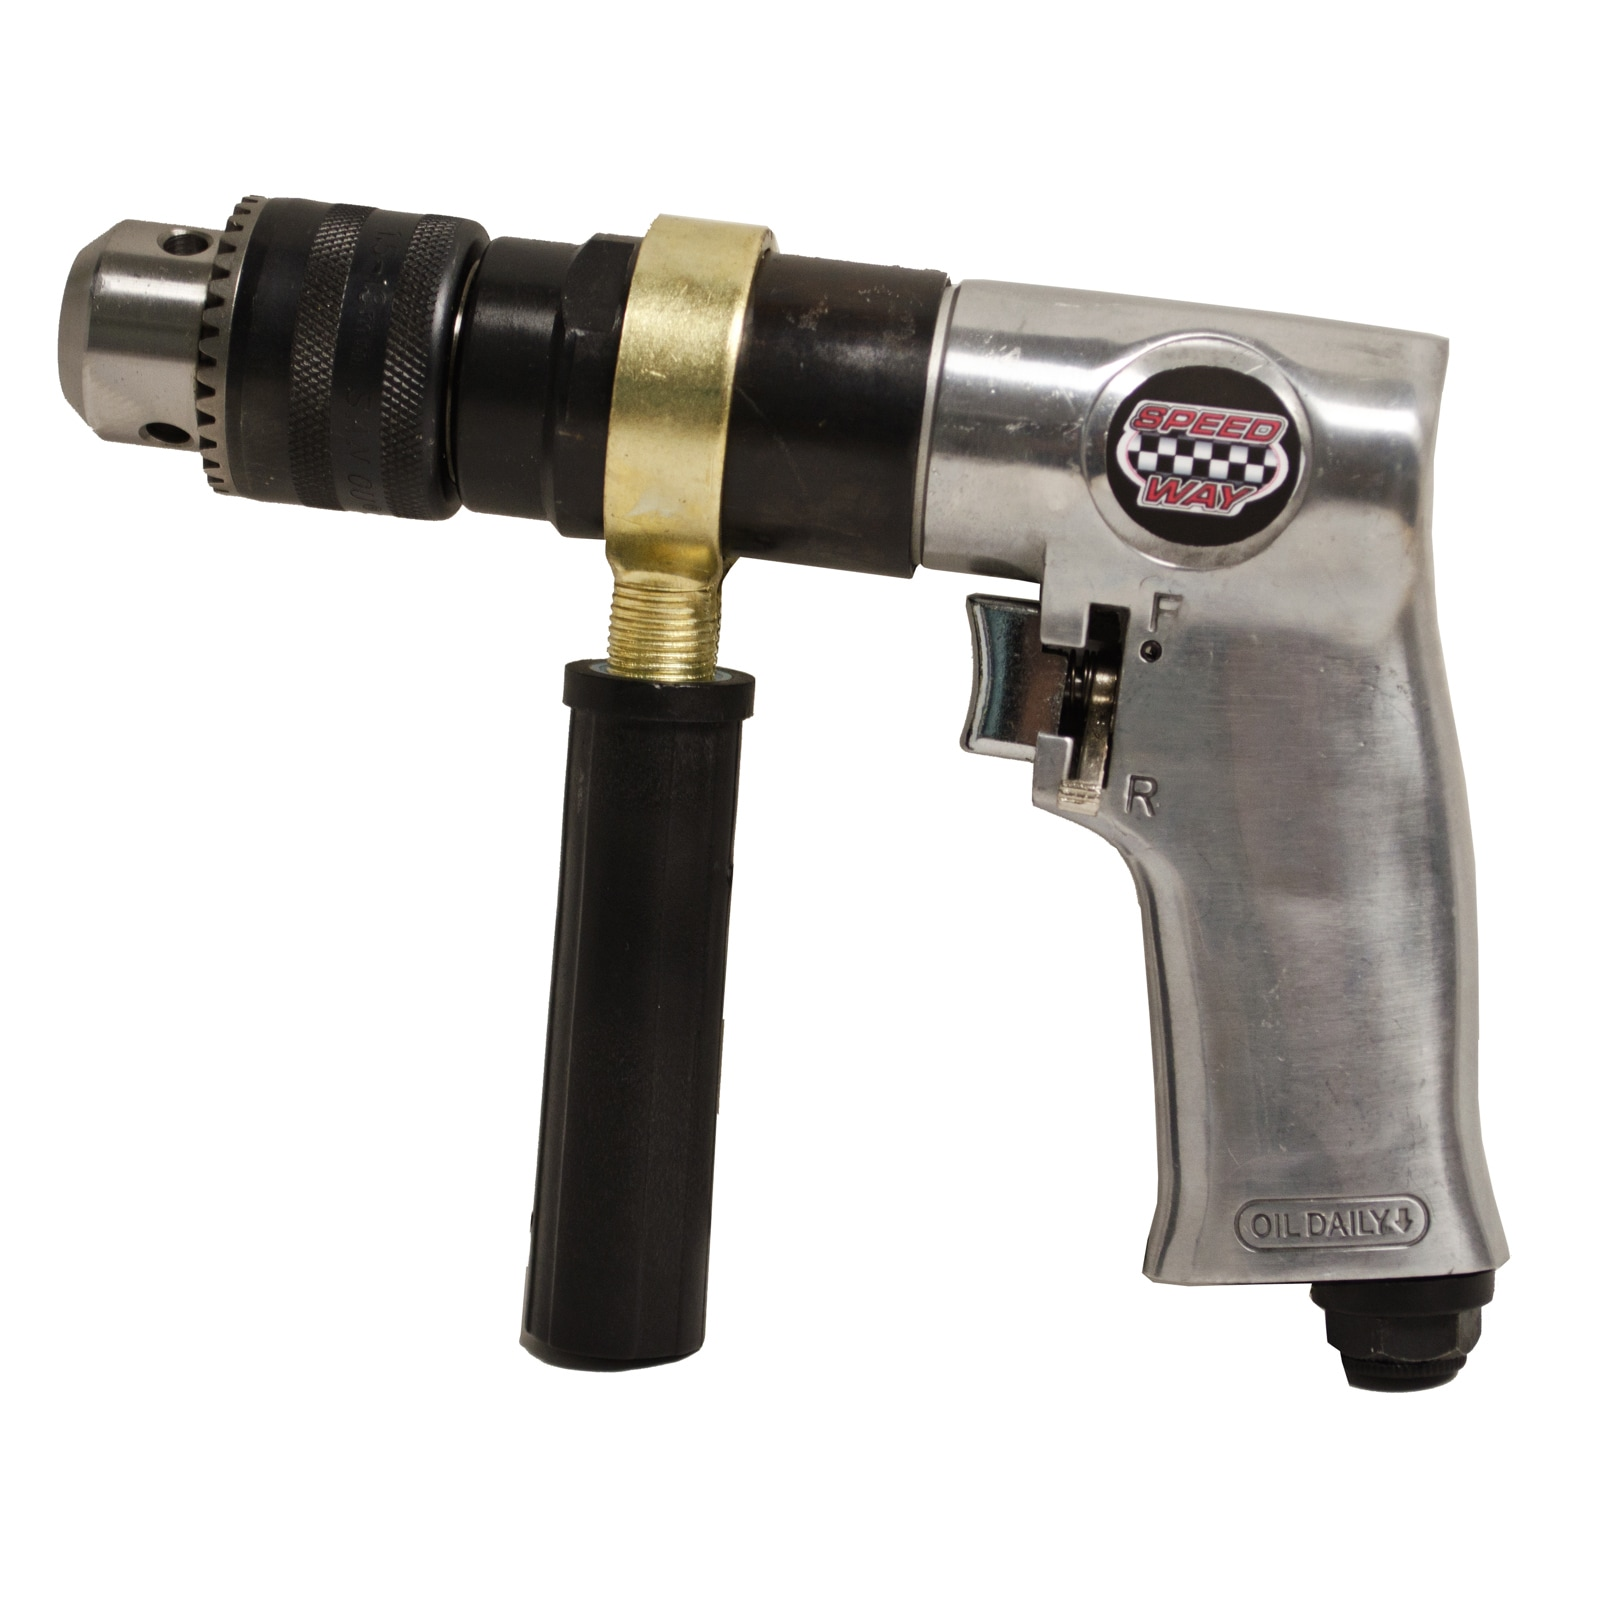 Speedway 1/2 Variable Speed Reversible air drill